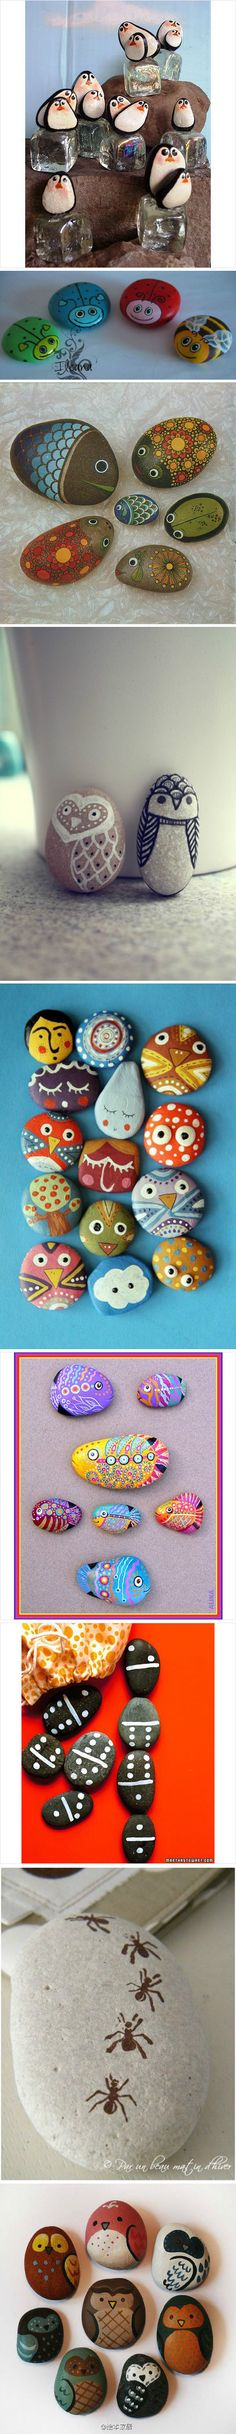 painted pebbles- great idea for fun on a winter day.